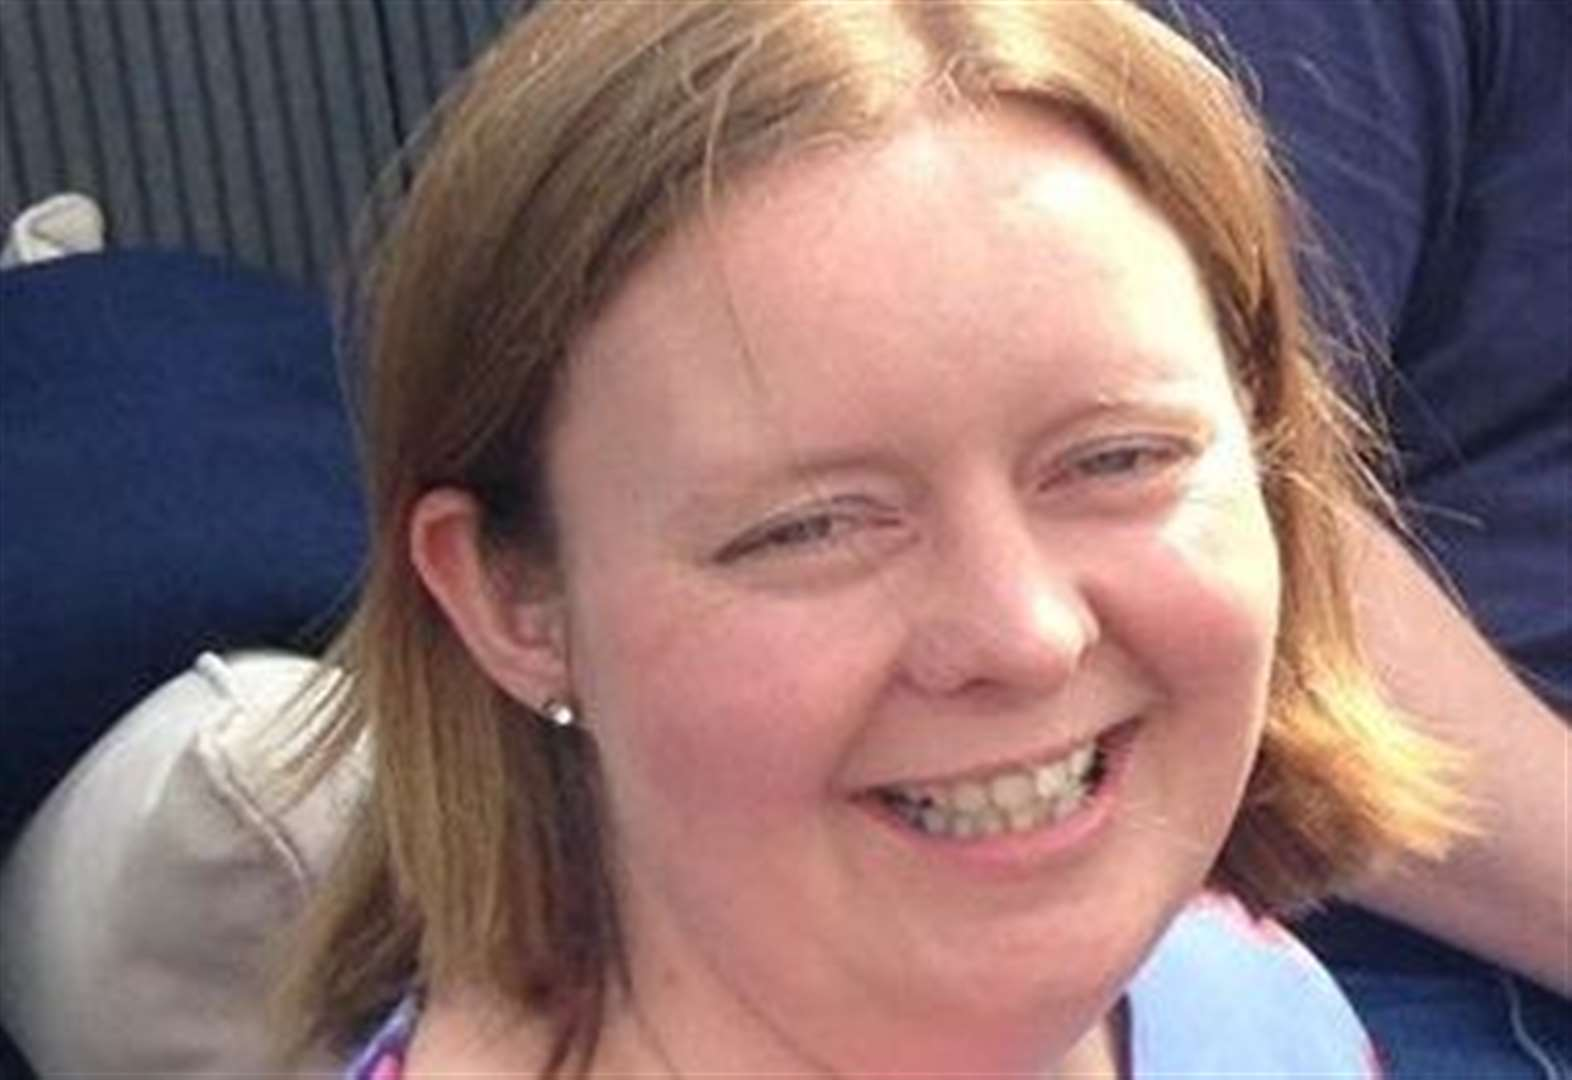 Suffolk jogger died after car skidded on an icy road and ploughed into her, inquest told